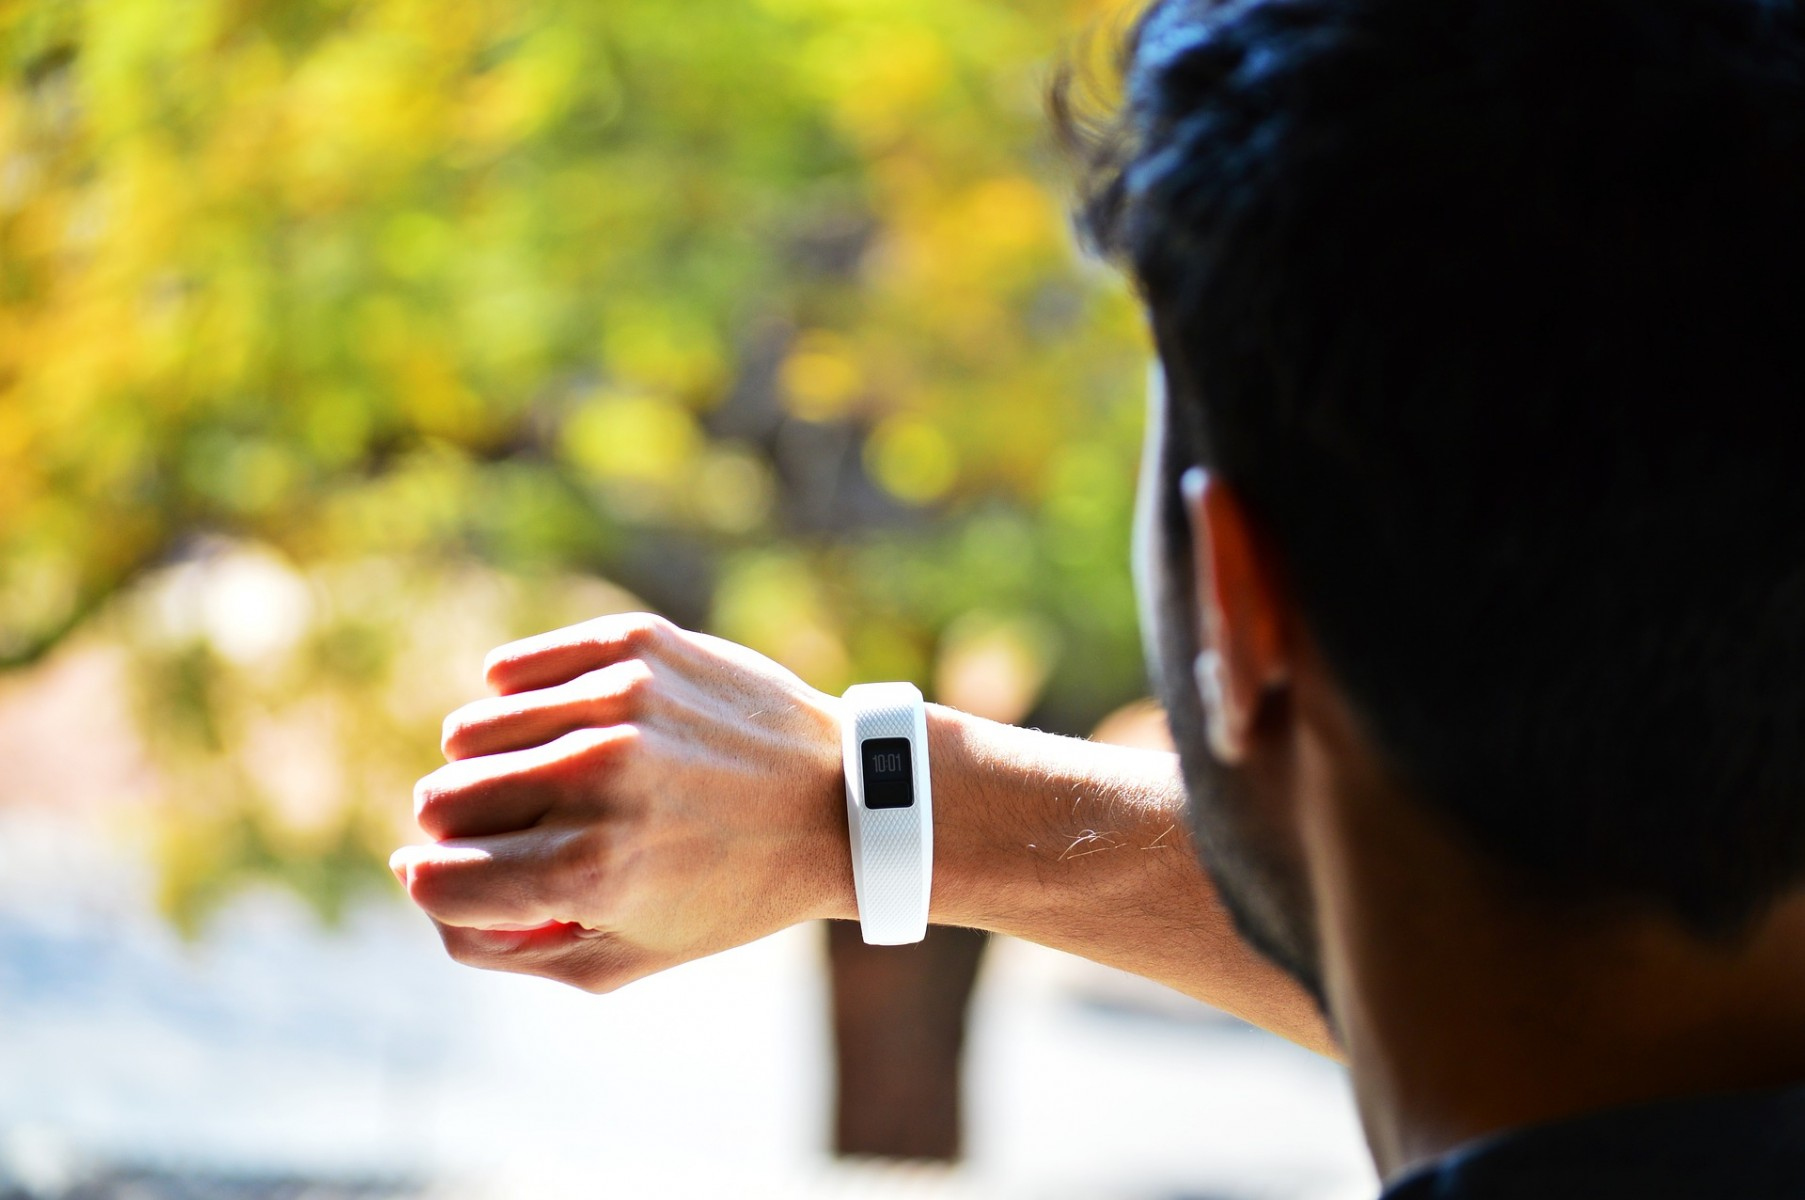 What happens to the data collected by your fitness tracker